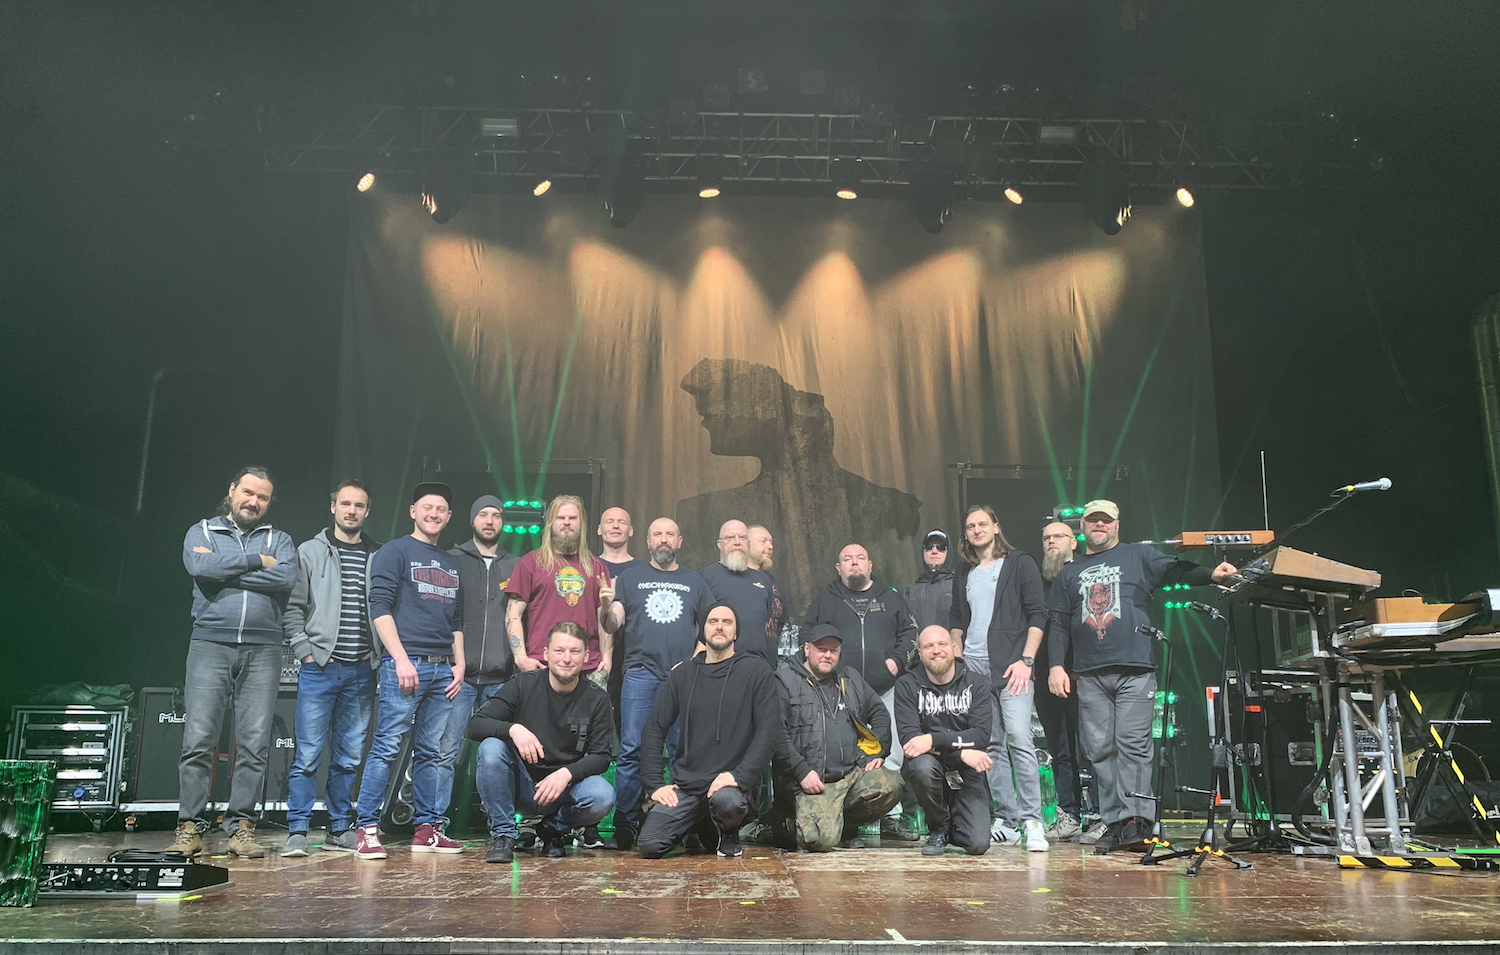 Wasteland Tour 2018 has ended